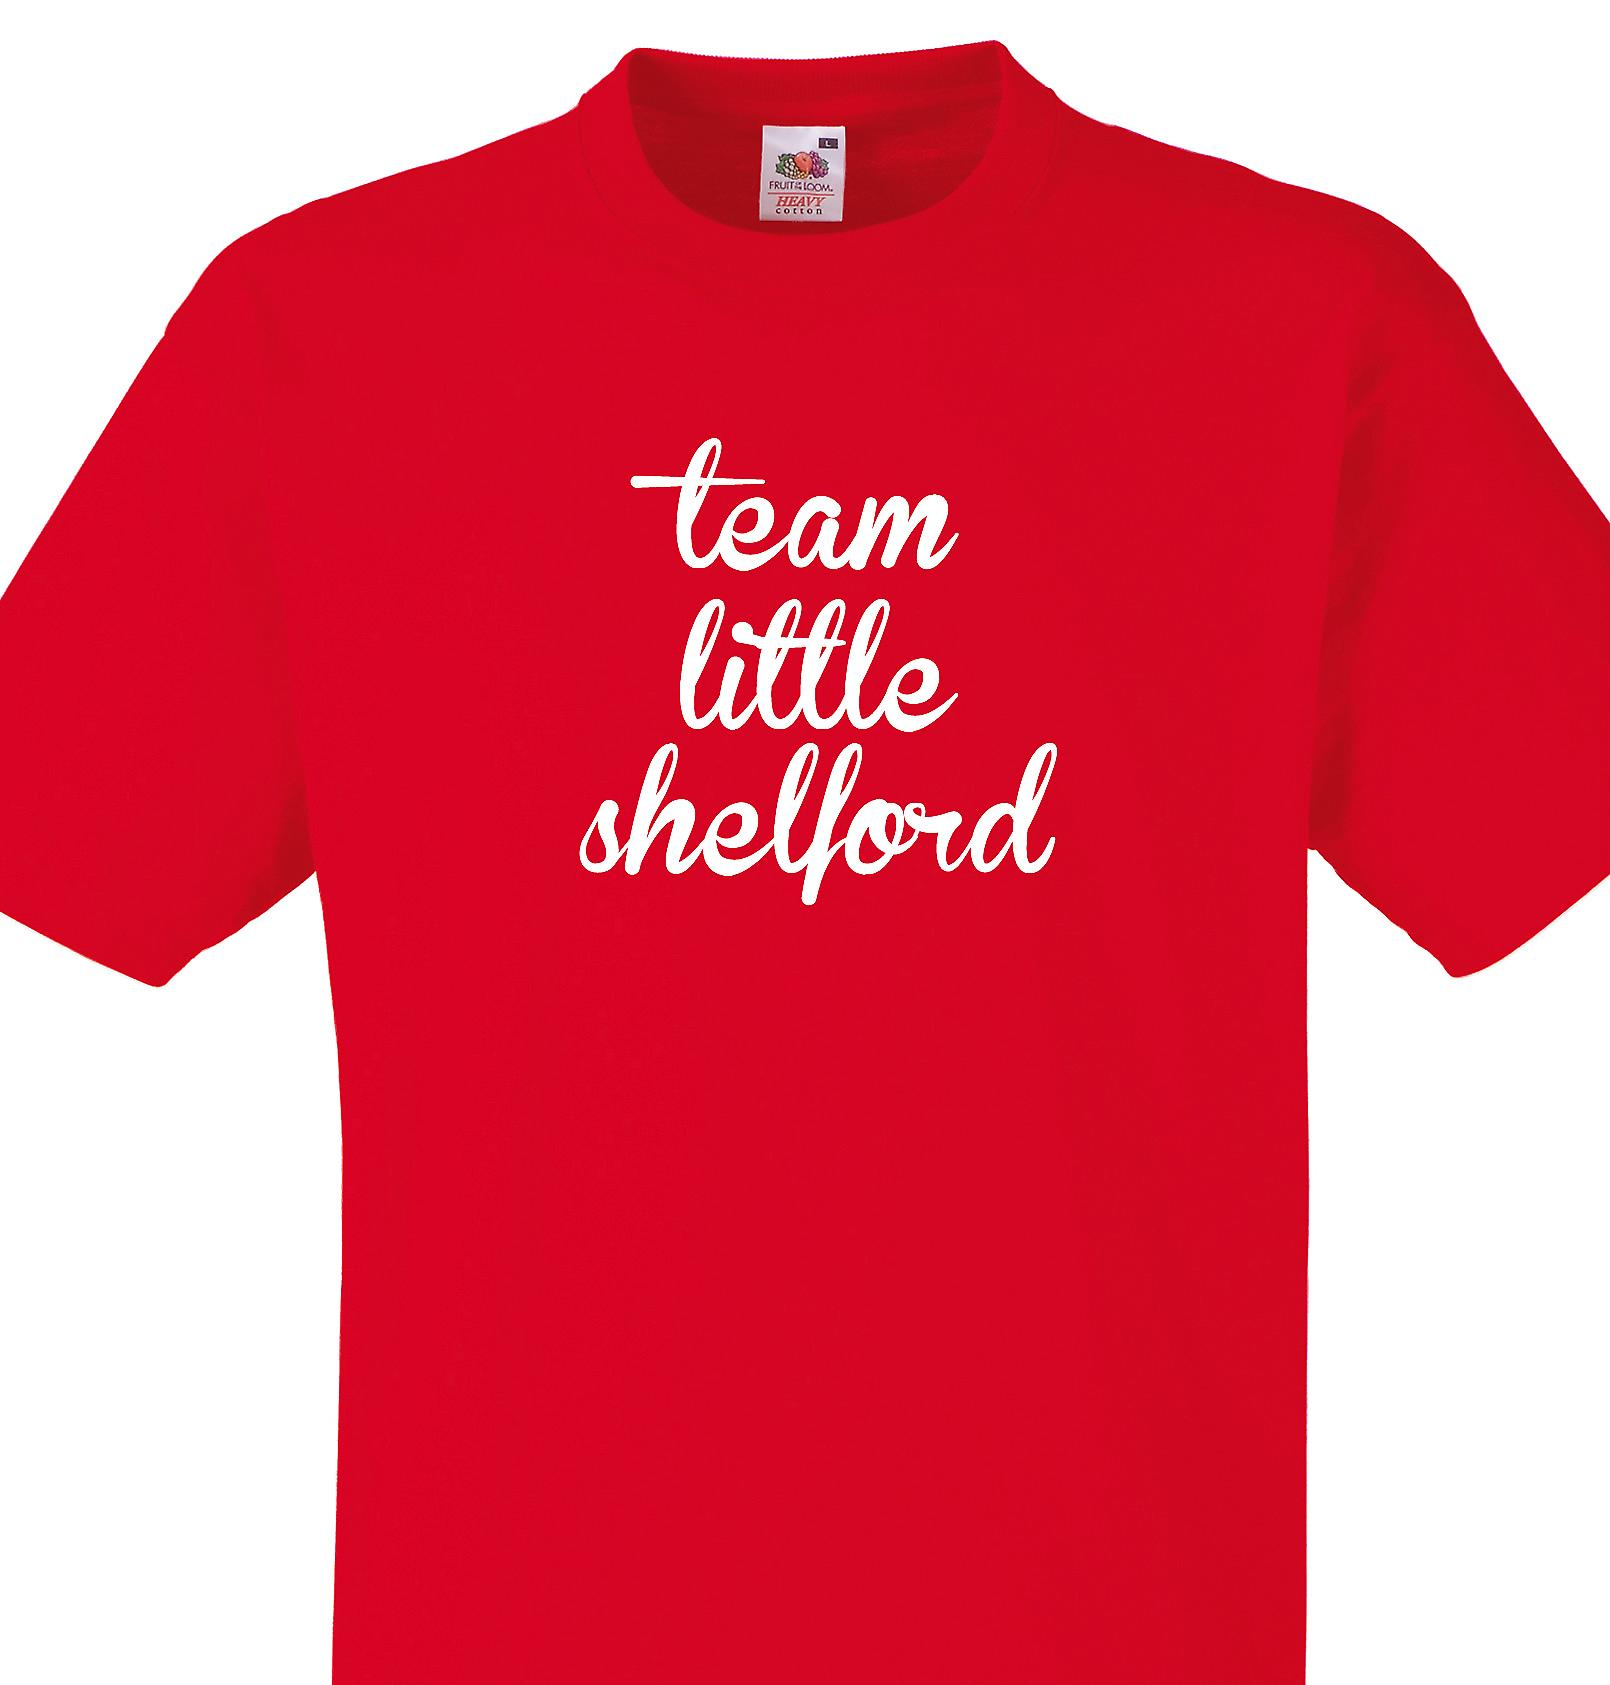 Team Little shelford Red T shirt